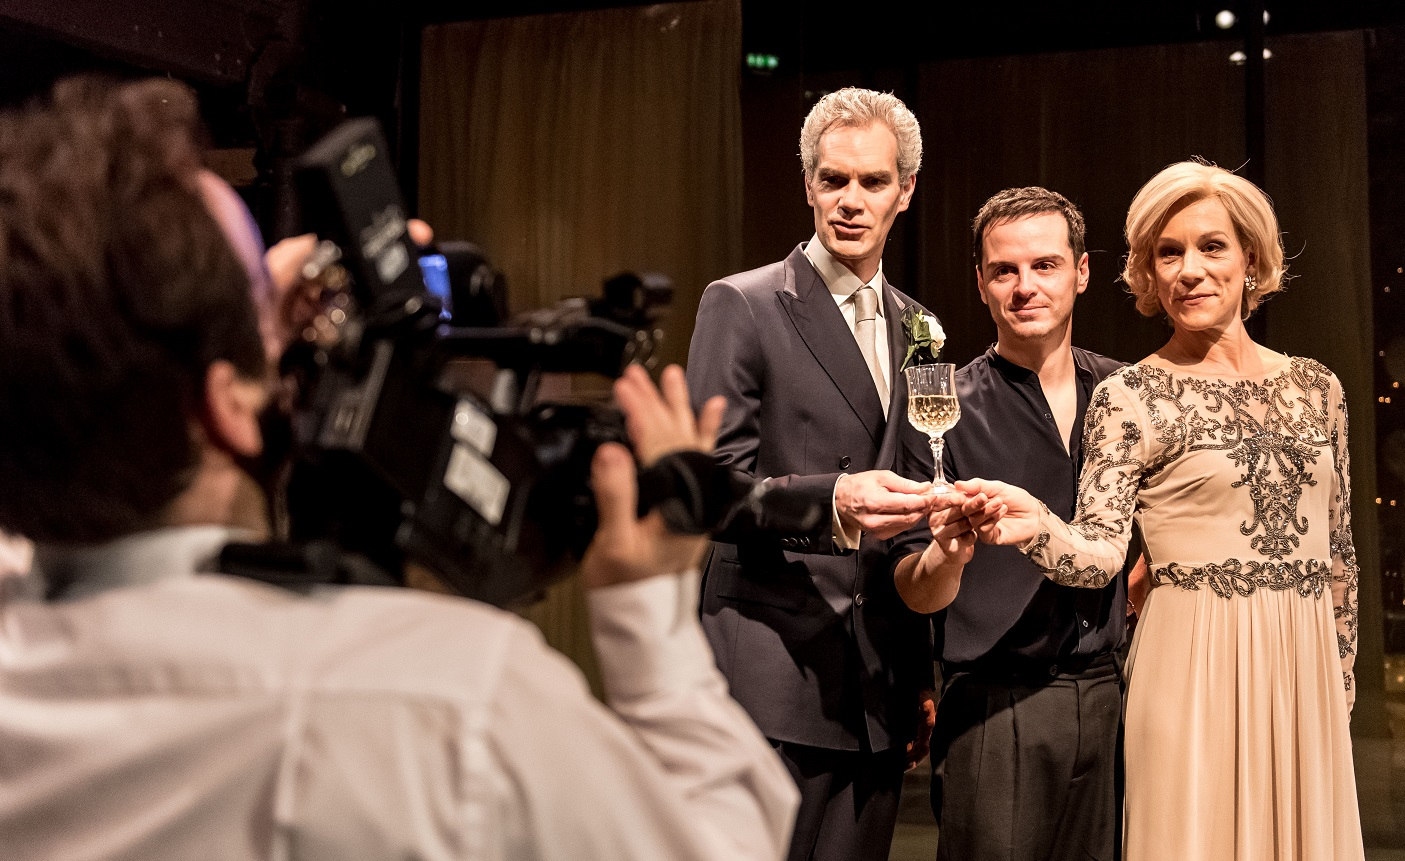 hamlet review Benedict cumberbatch stars as the danish prince in director lyndsey turner's modern-dress staging of 'hamlet' at london's barbican theatre.